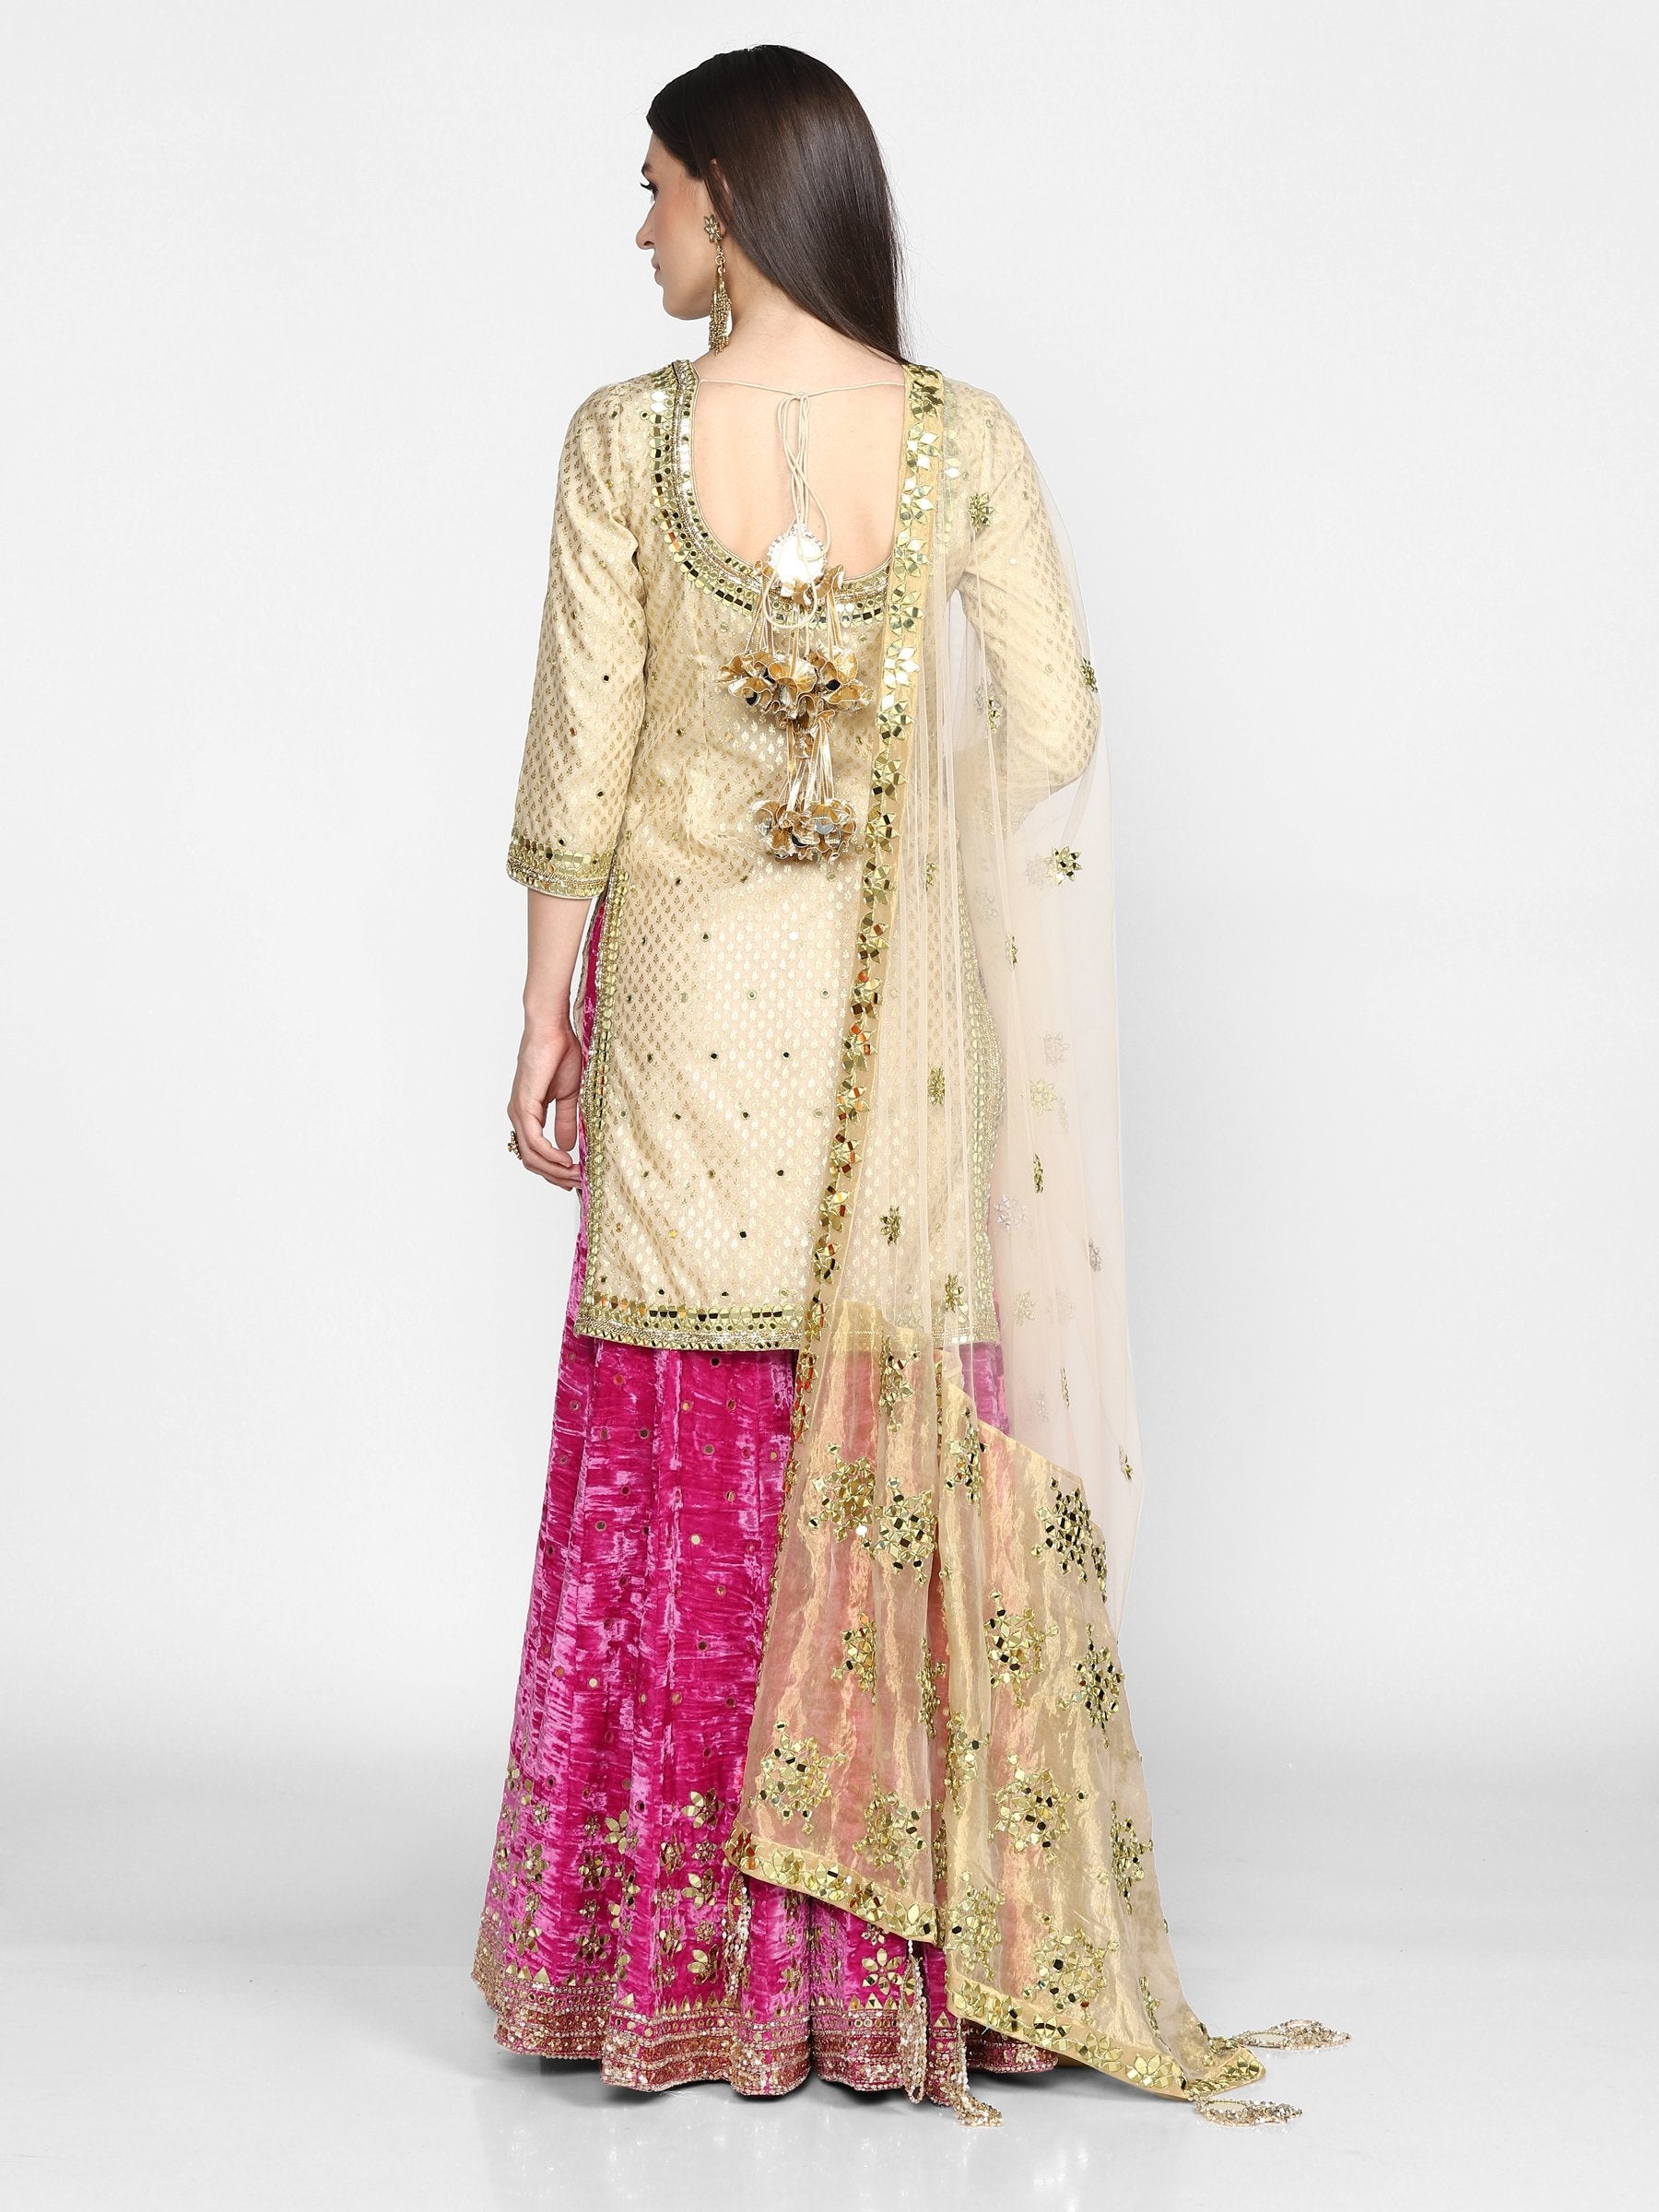 Abhinav Mishra  Beige And Pink  Sharara Set - The Grand Trunk